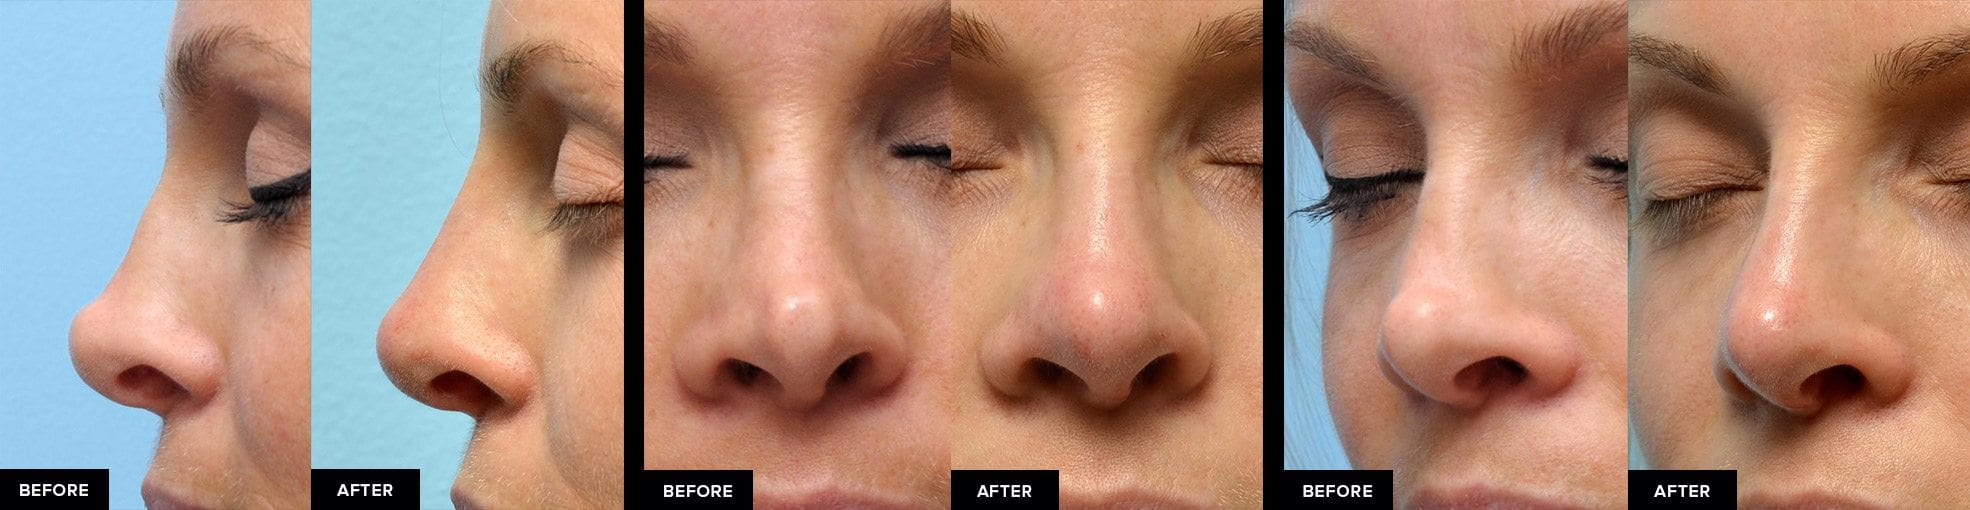 Nonsurgical rhinoplasty from 3 angles